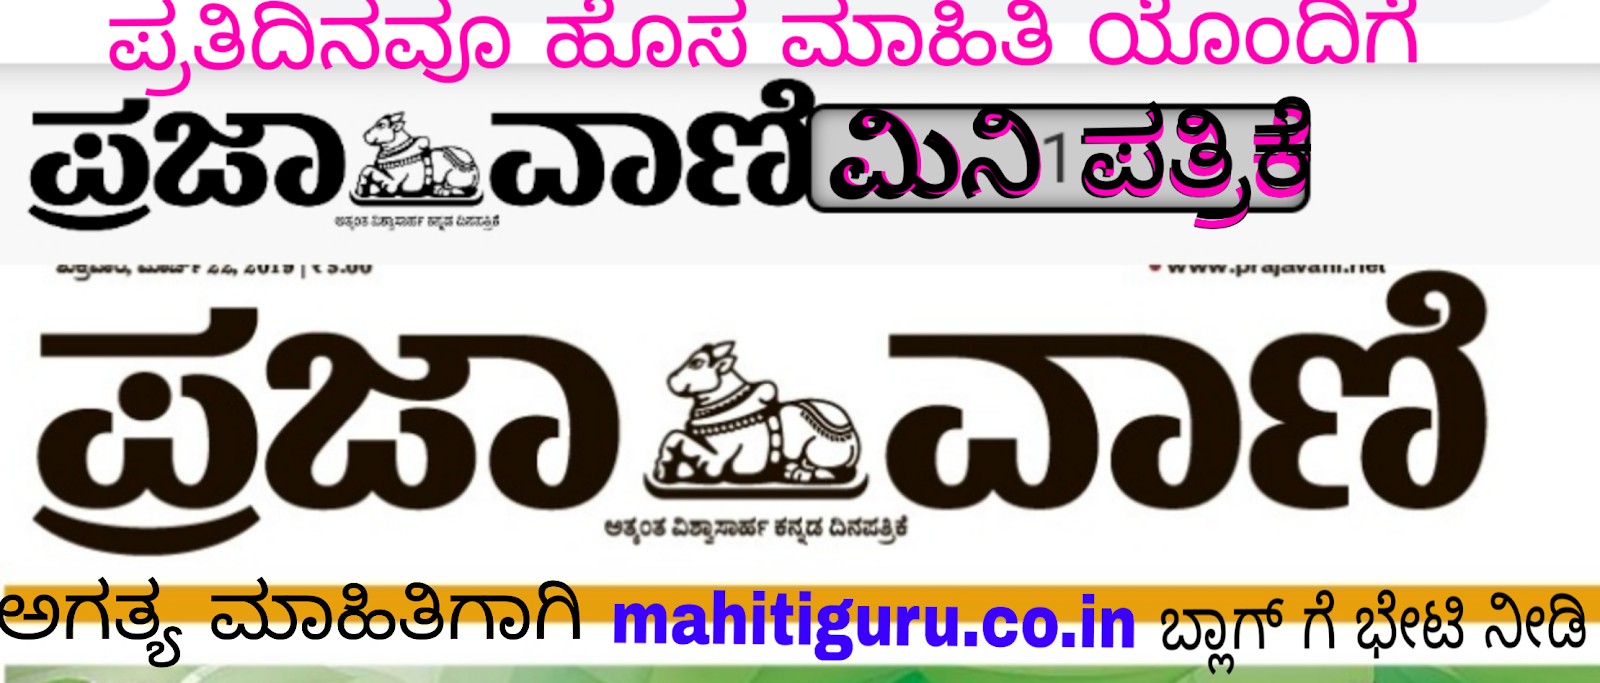 30-07-19 Today mini prajavani